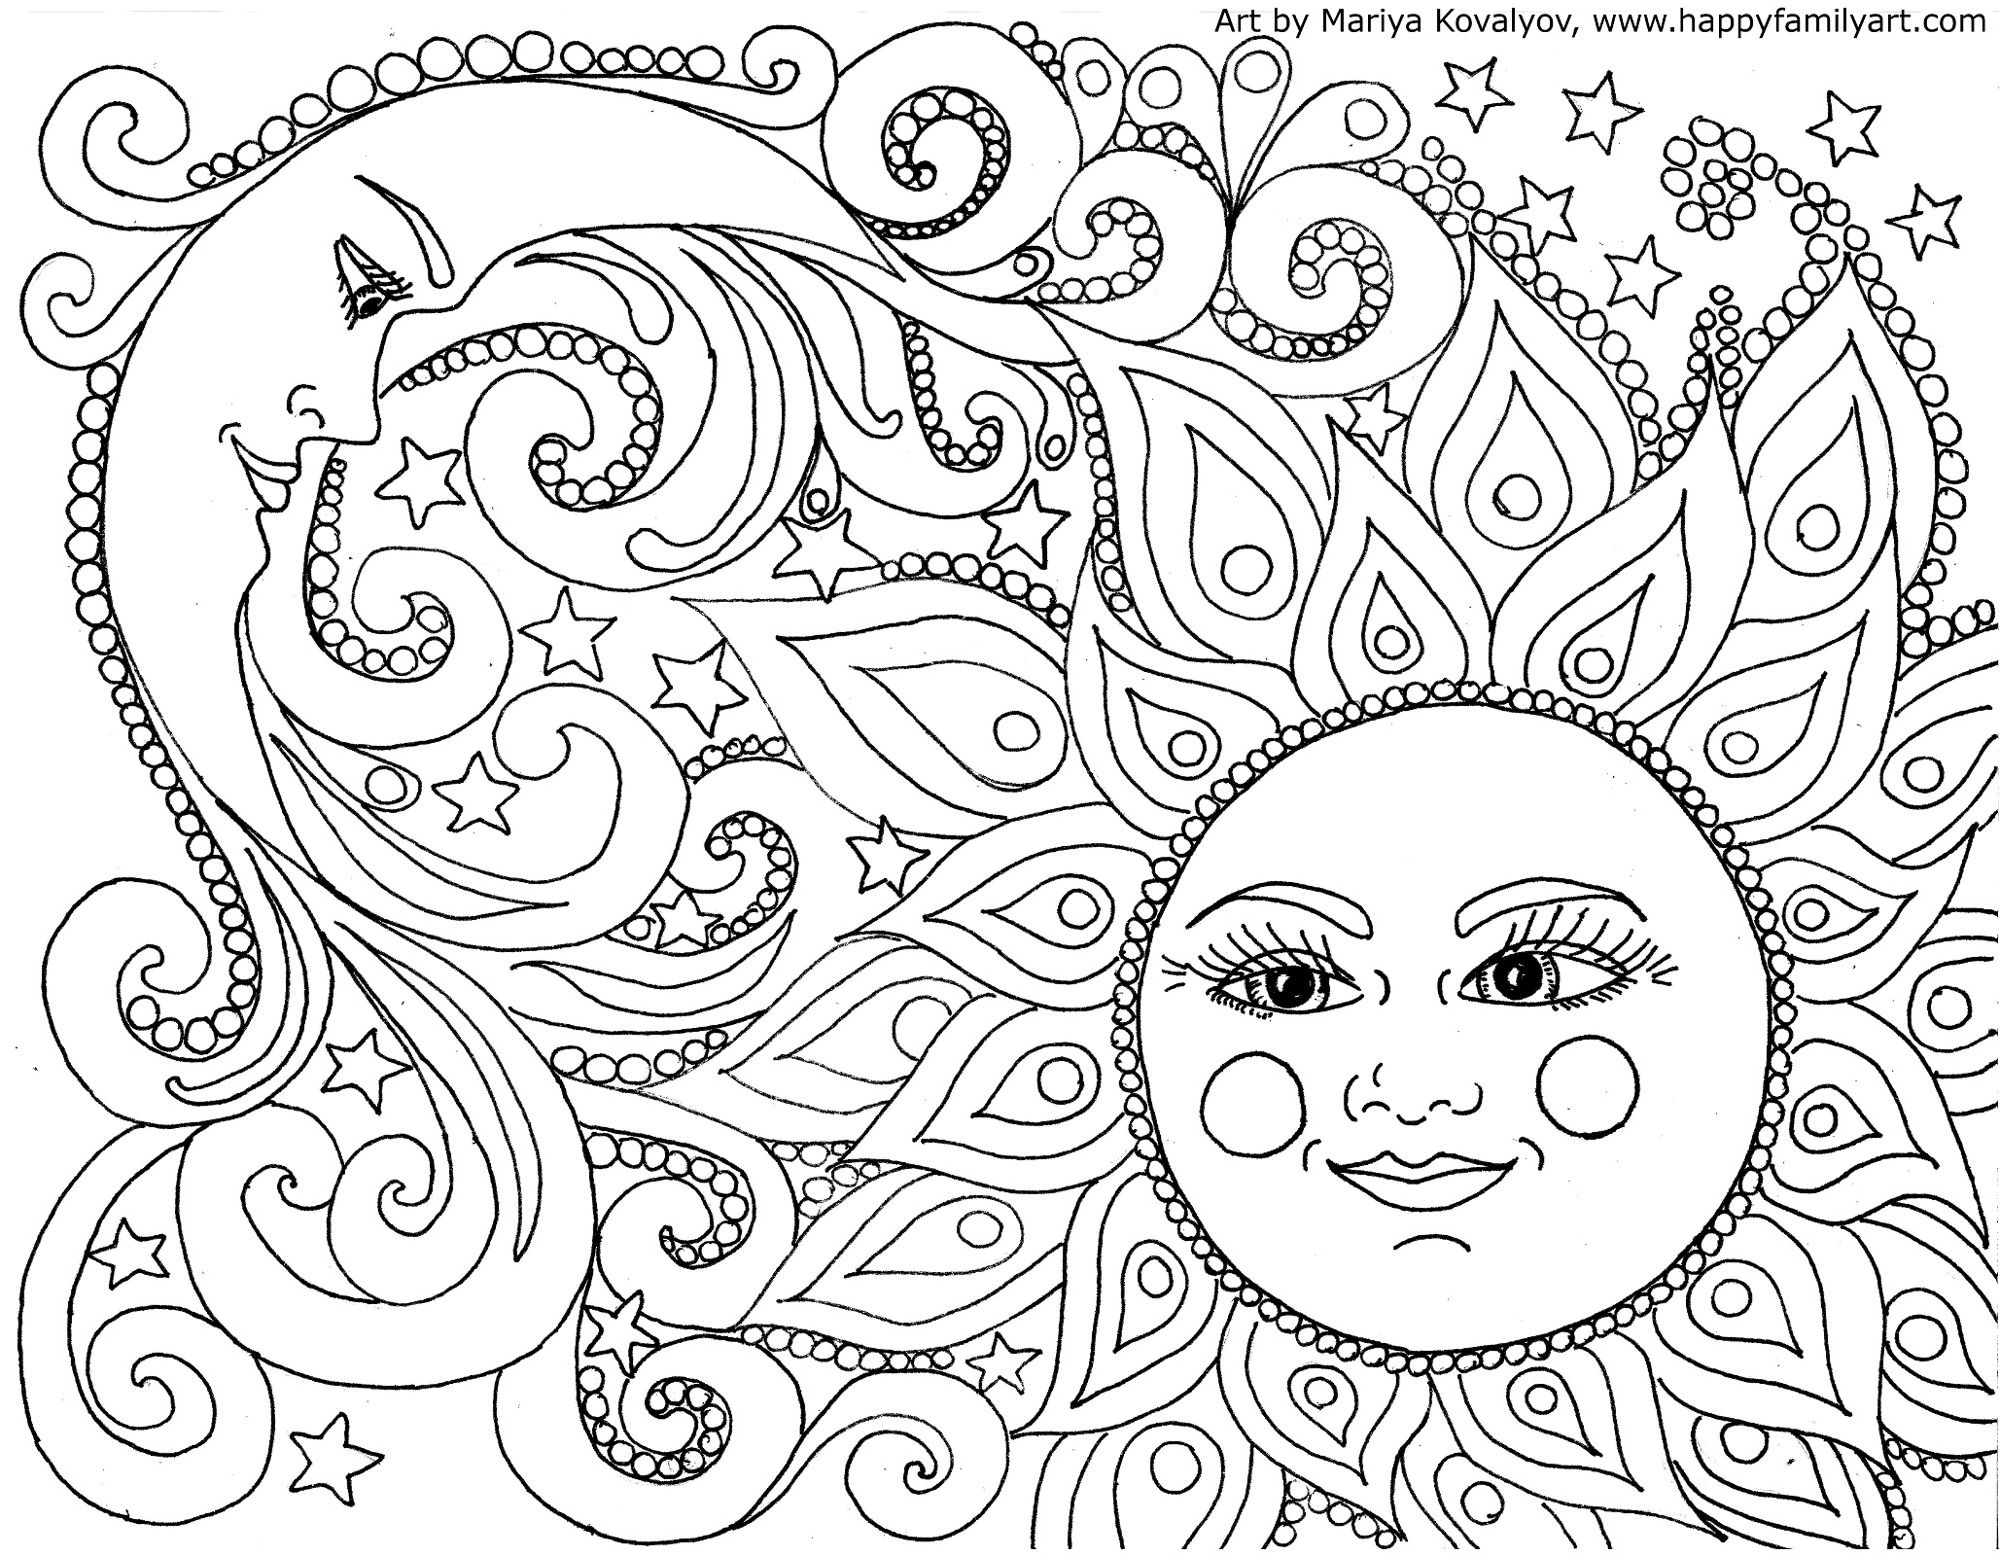 Coloring pages for adults - Adult Coloring Pages I Made Many Great Fun And Original Coloring Pages